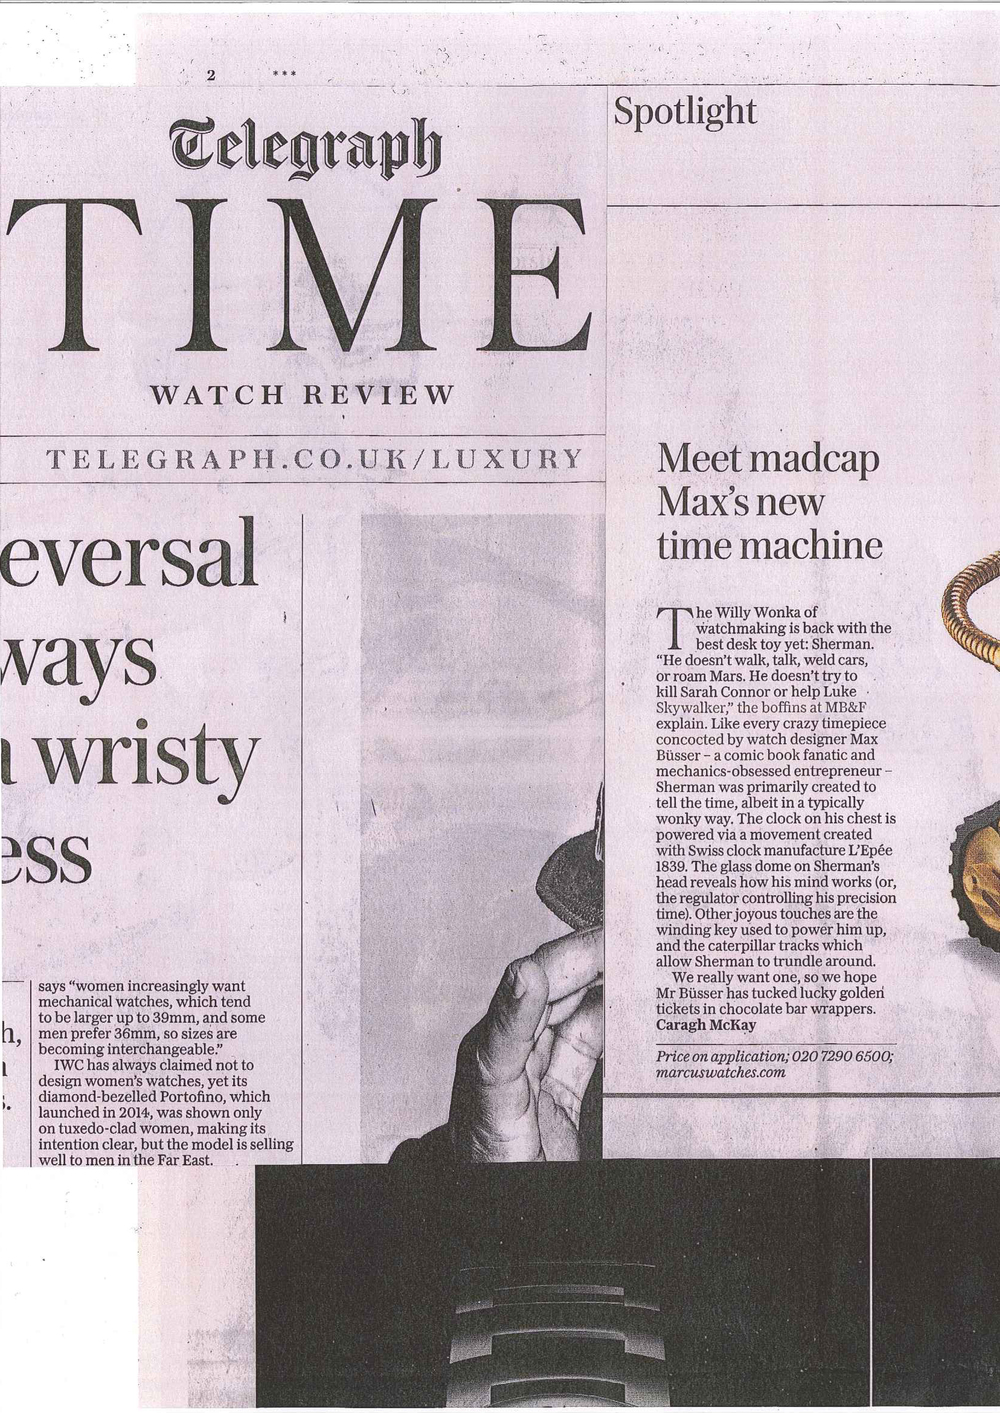 Telegraph Time Watch Review 19 March 2016